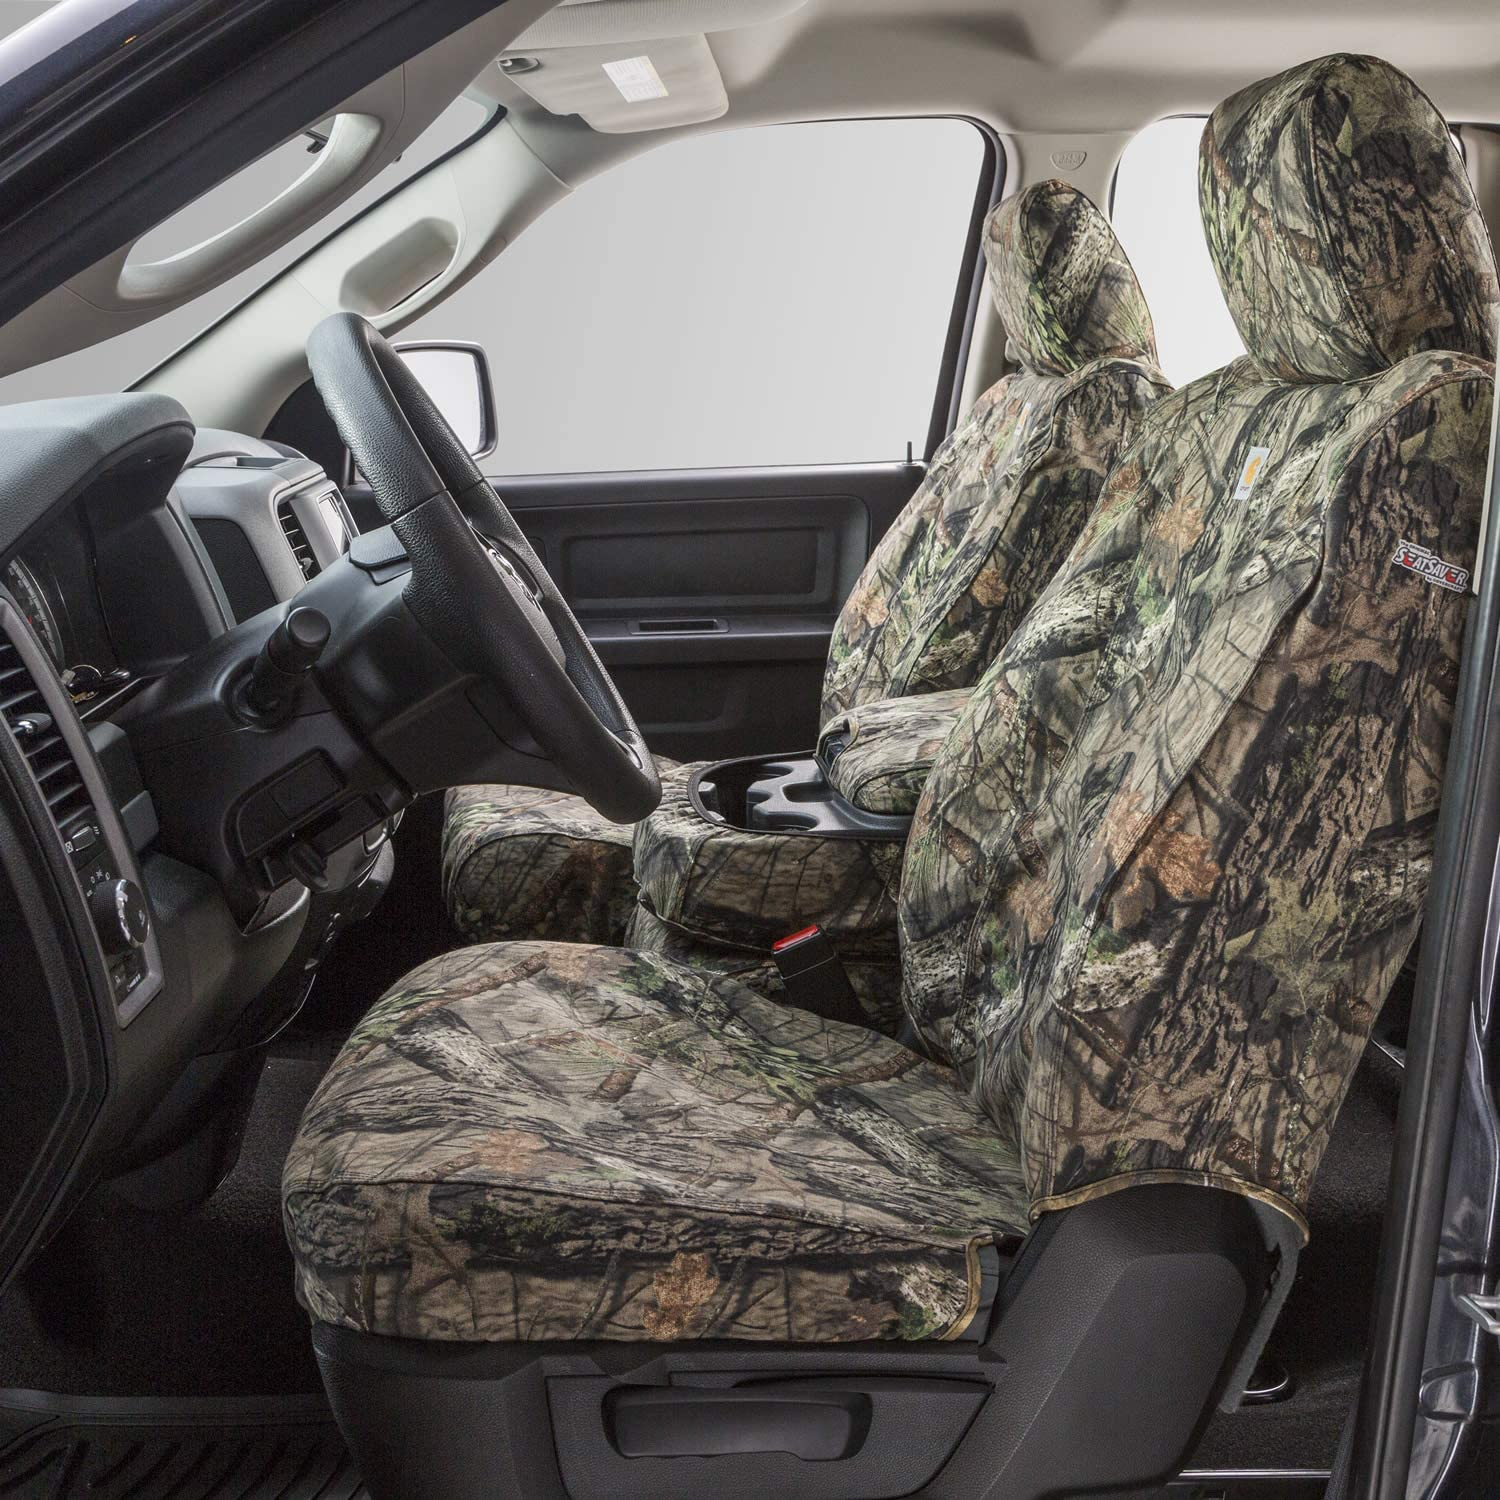 B07CW46SDZ Covercraft Carhartt Mossy Oak Camo SeatSaver Front Row Custom Fit Seat Cover for Select Dodge Ram 2500/Ram 3500 Models - Duck Weave (Break-Up Country) - SSC3372CAMB 81yypdcK0TL.SL1500_